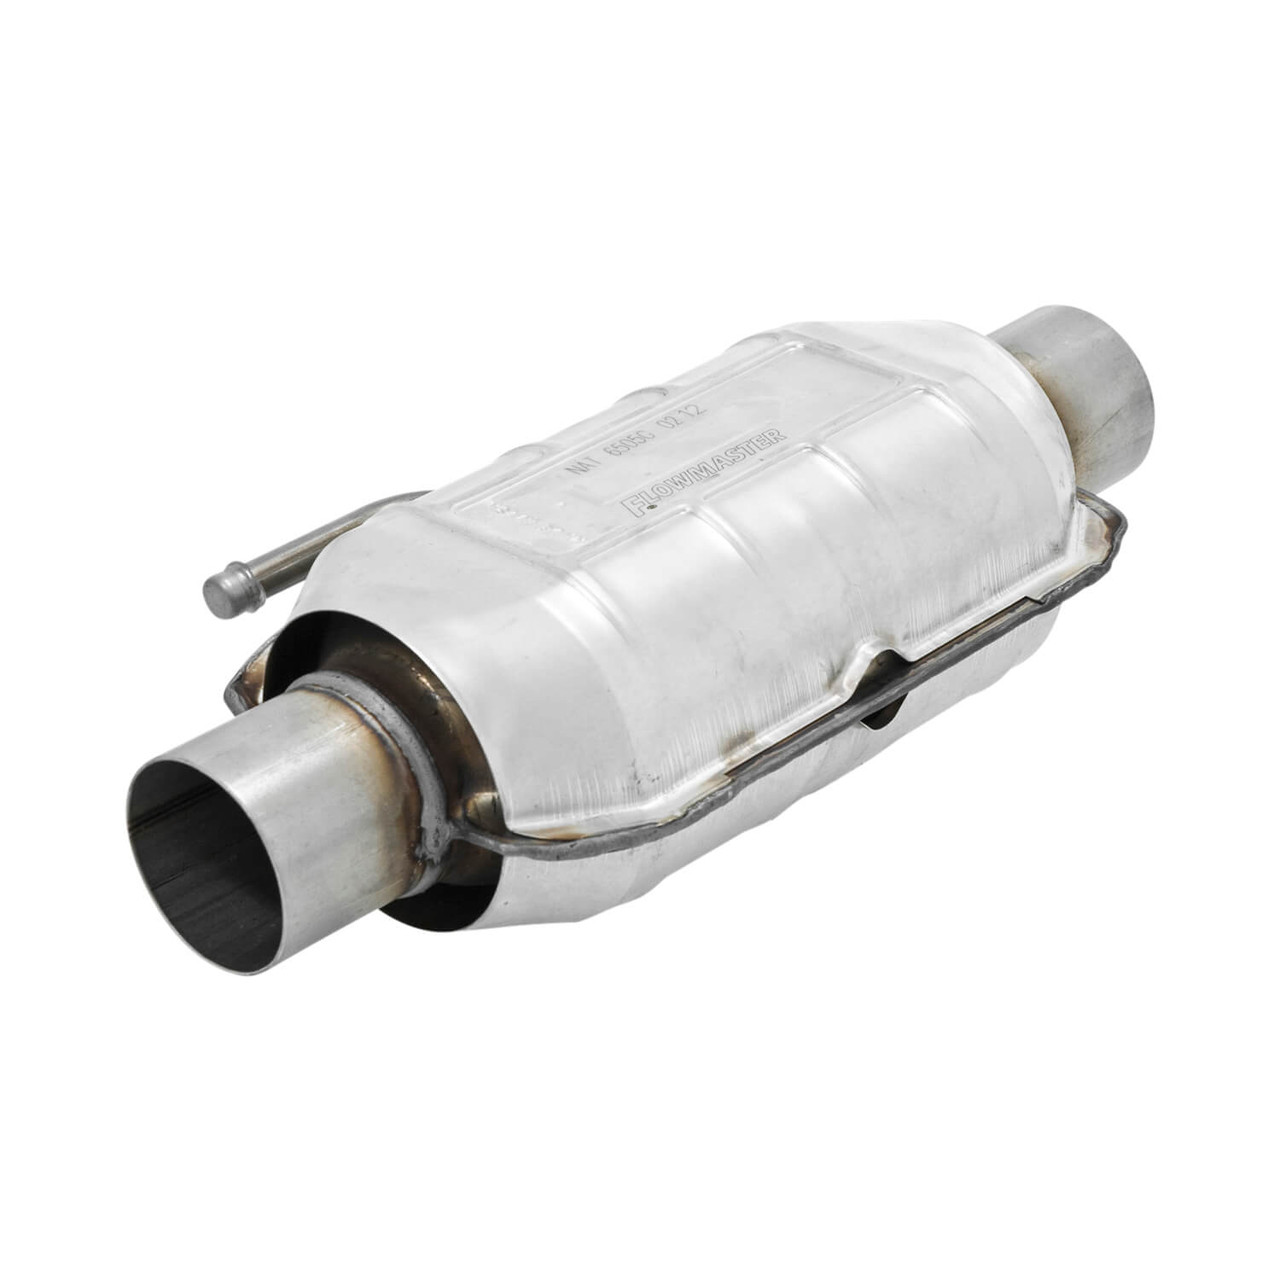 2250224 Flowmaster Catalytic Converter - Universal - 225 Series - 2.25 in. Inlet/Outlet - Federal